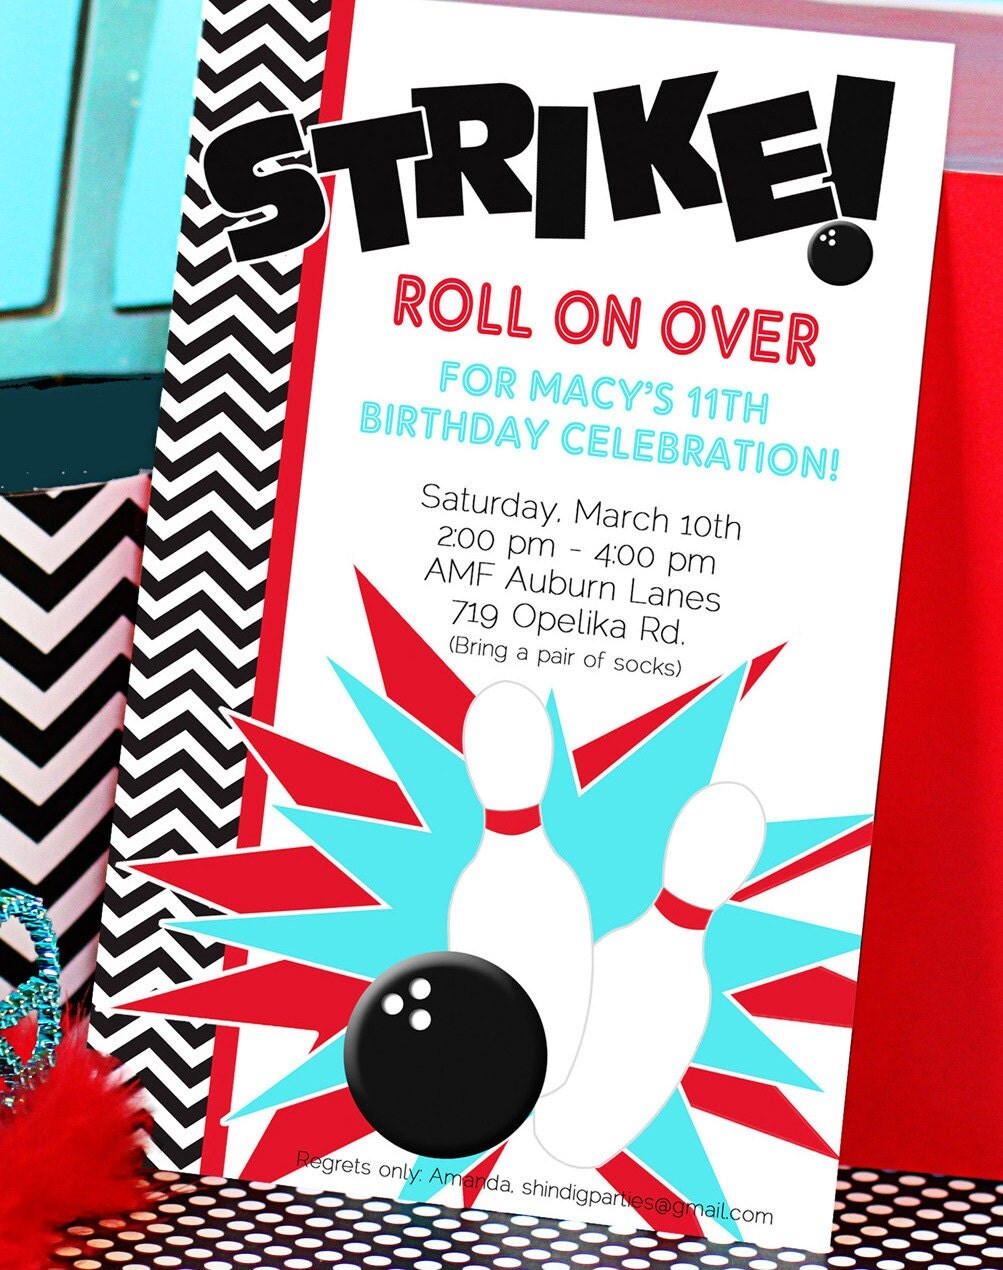 Bowling birthday party invitation template trattorialeondoro filmwisefo